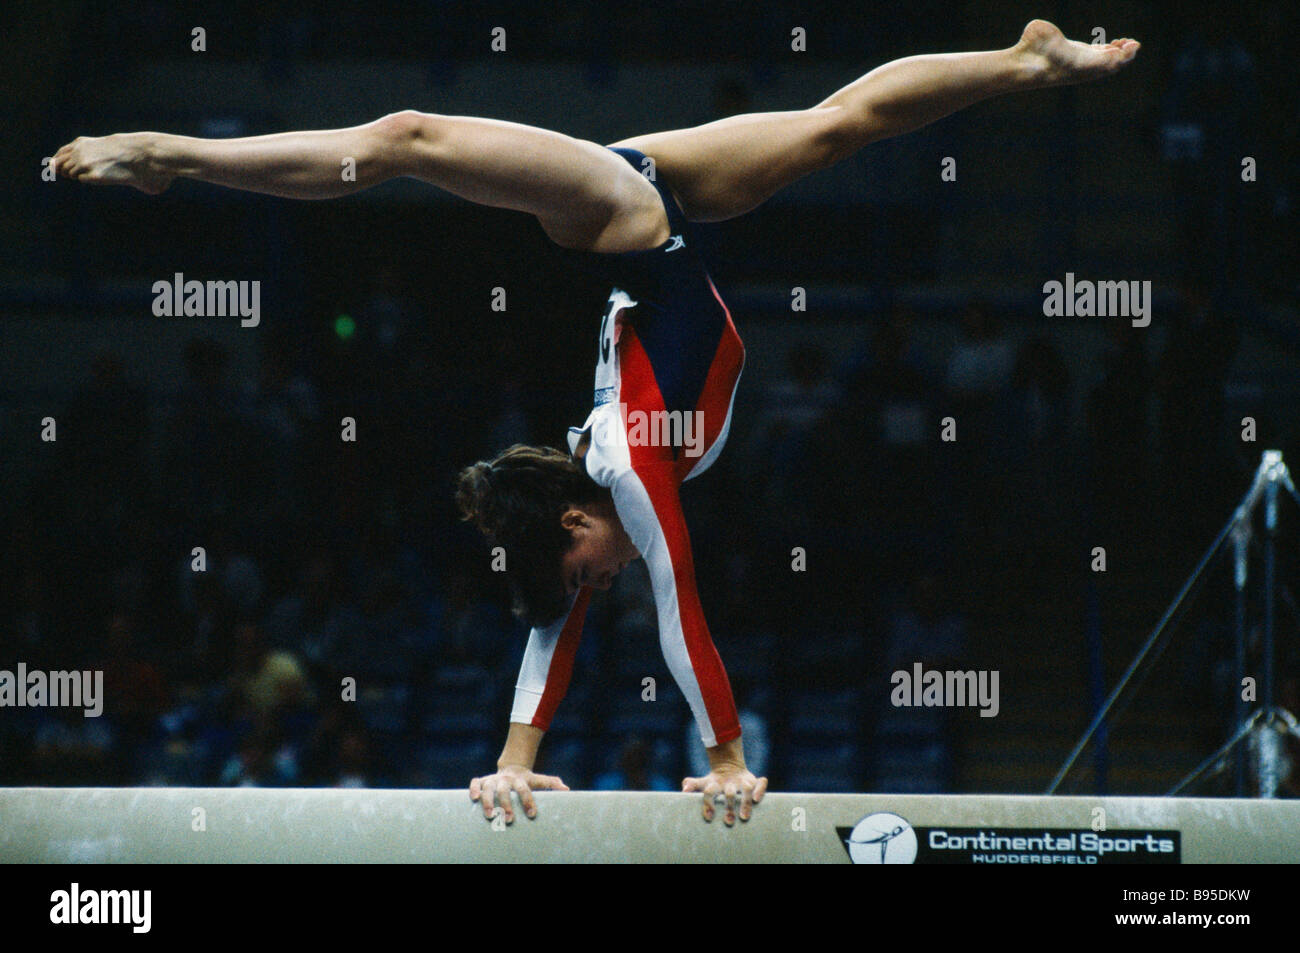 SPORT Gymnastics Beam Female gymnast on the beam exercise during the World Student Games in Sheffield England - Stock Image